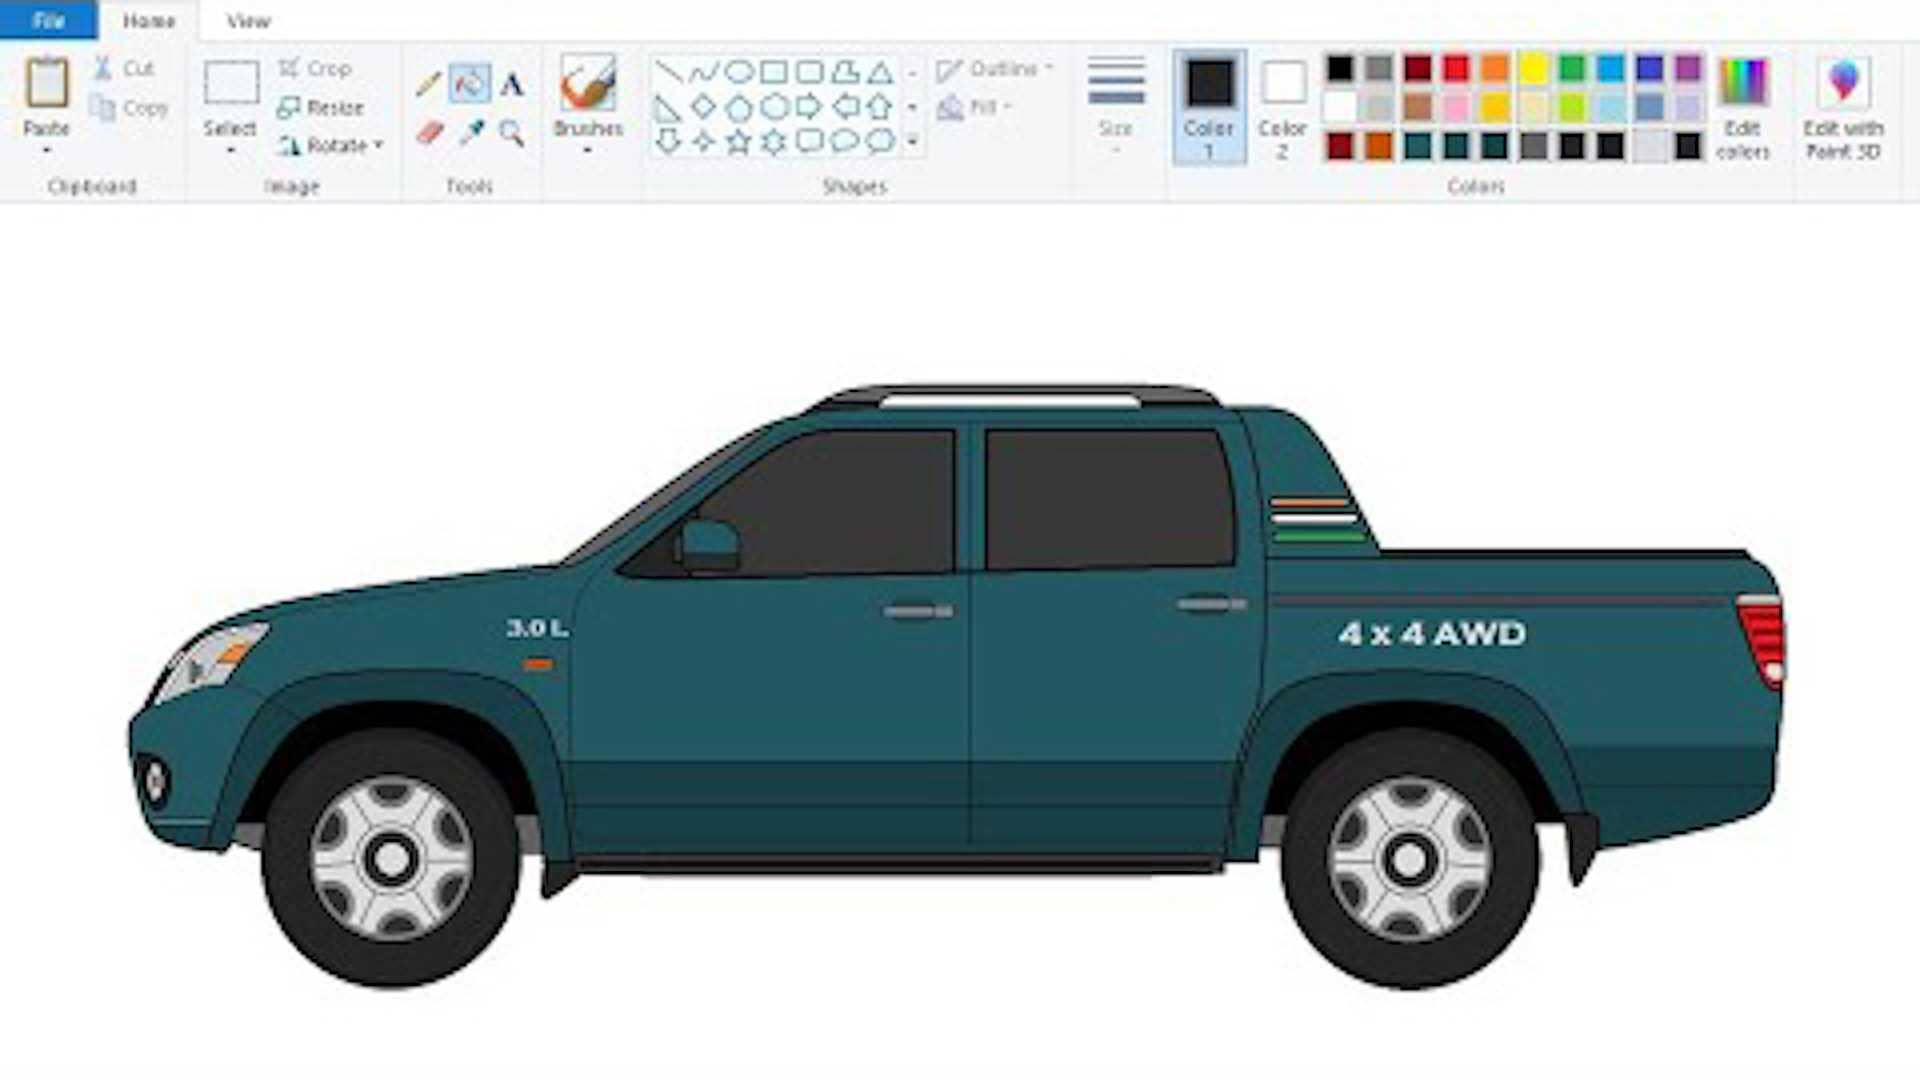 beingnandish-s-cars-drawn-in-microsoft-paint